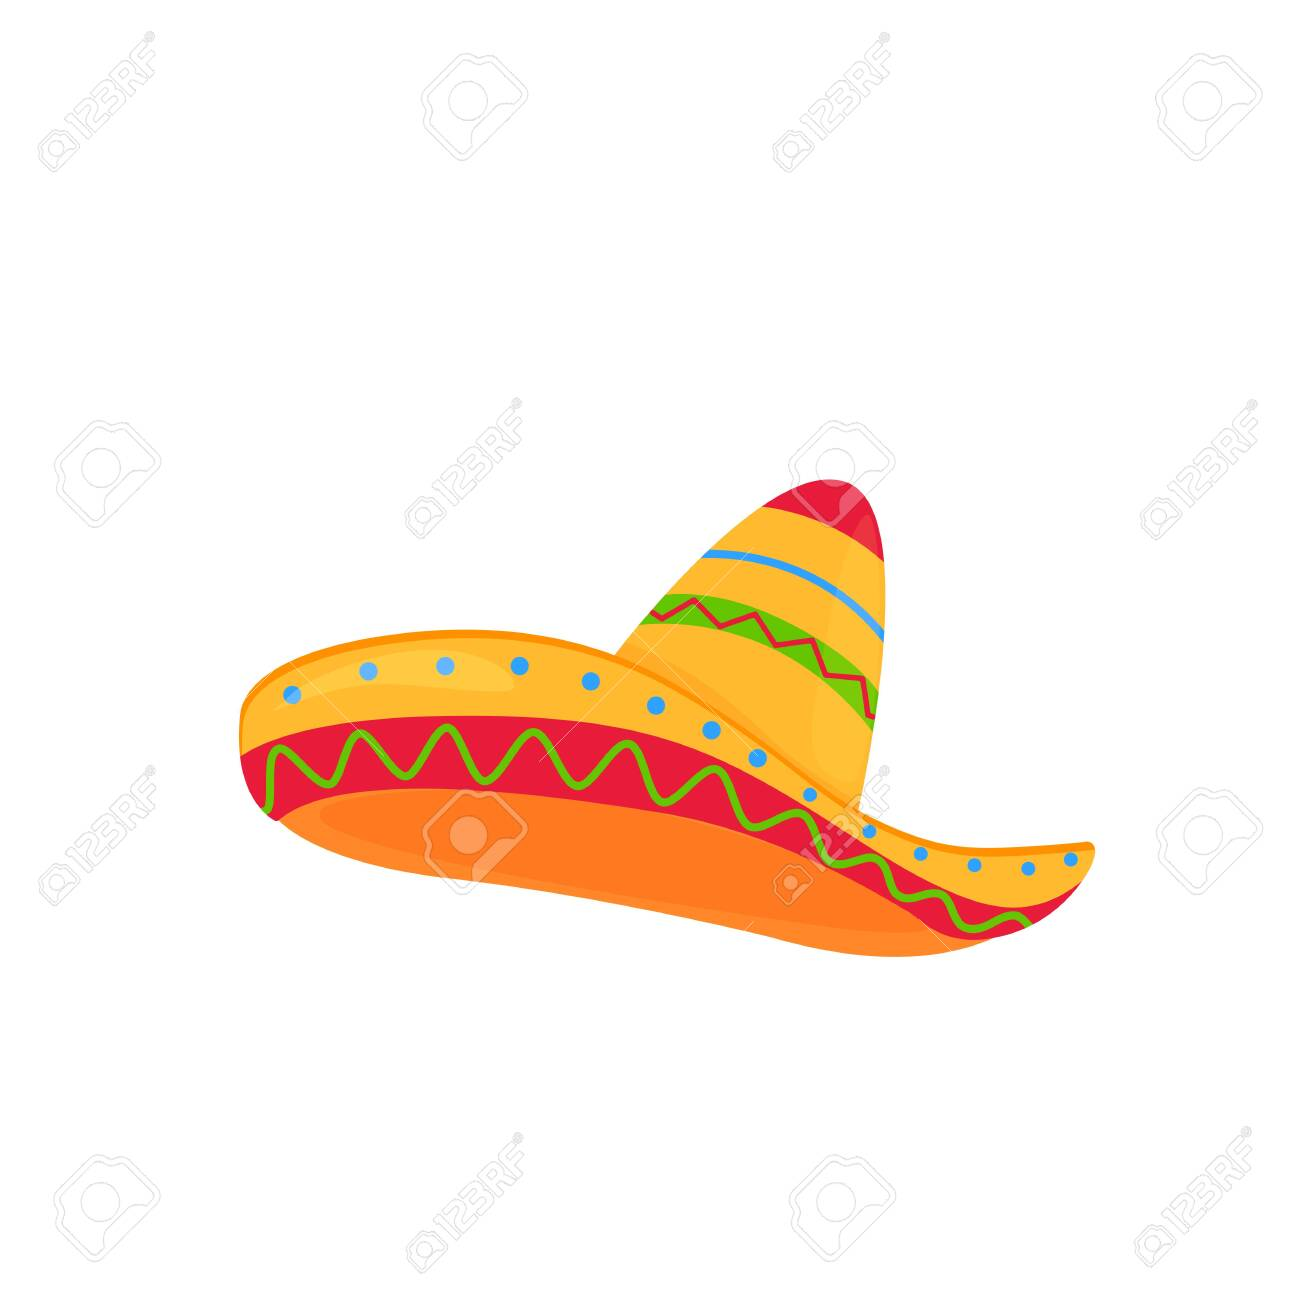 sombrero. mexican hat vector isolated on white background - 122480085